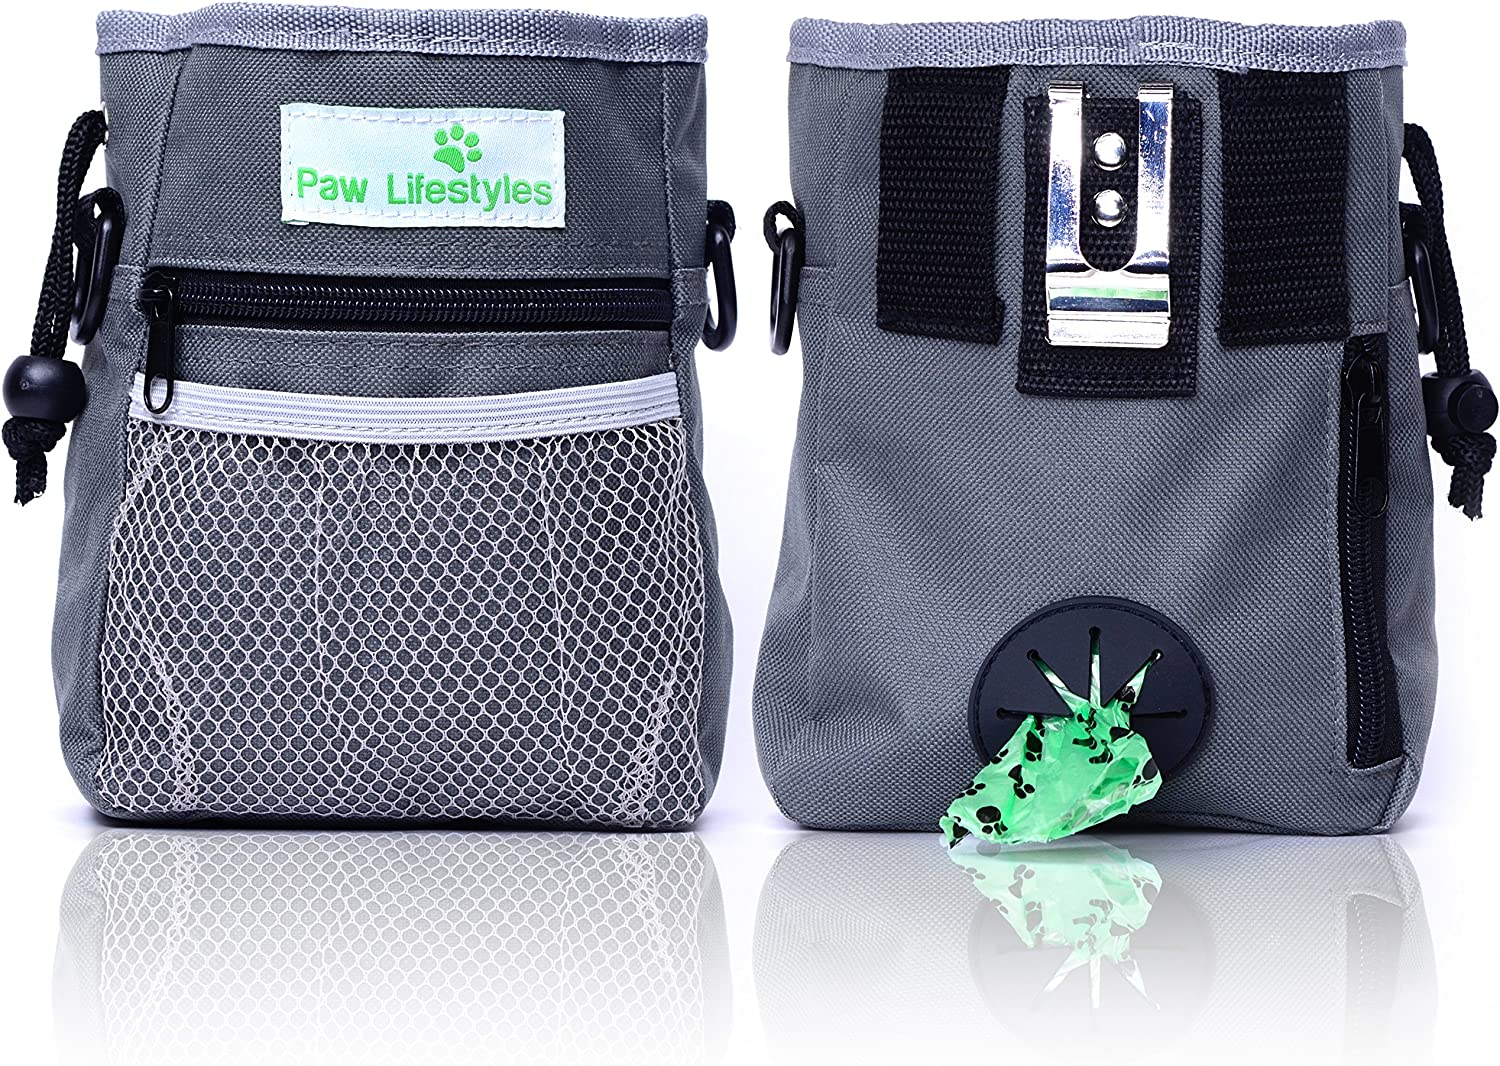 Paw Lifestyles Dog Treat Training Pouch Review